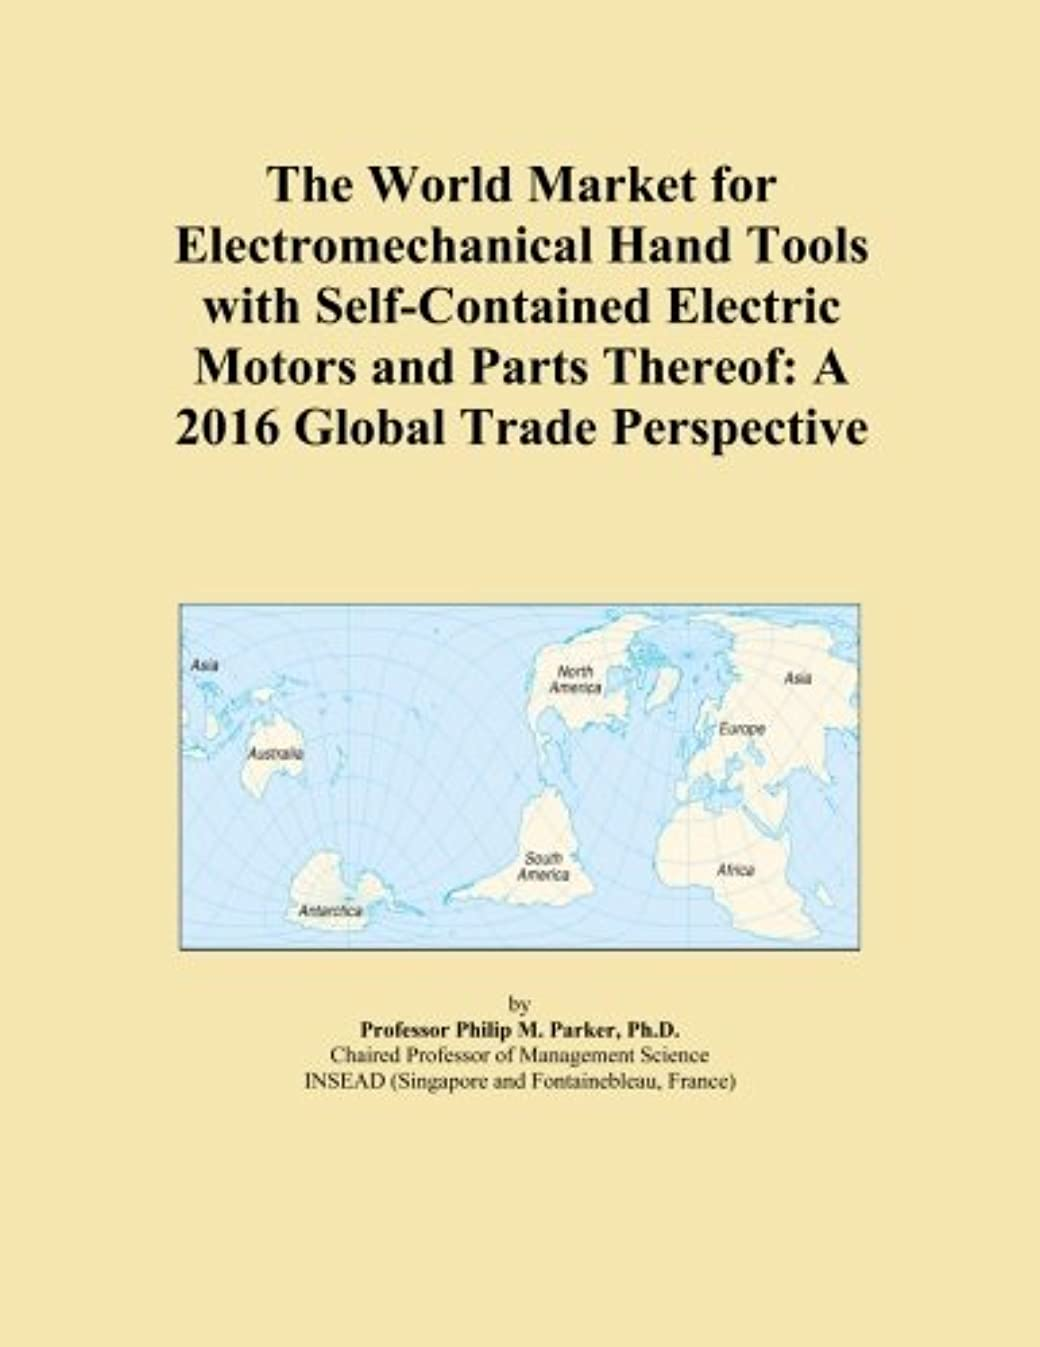 配管工早める不調和The World Market for Electromechanical Hand Tools with Self-Contained Electric Motors and Parts Thereof: A 2016 Global Trade Perspective